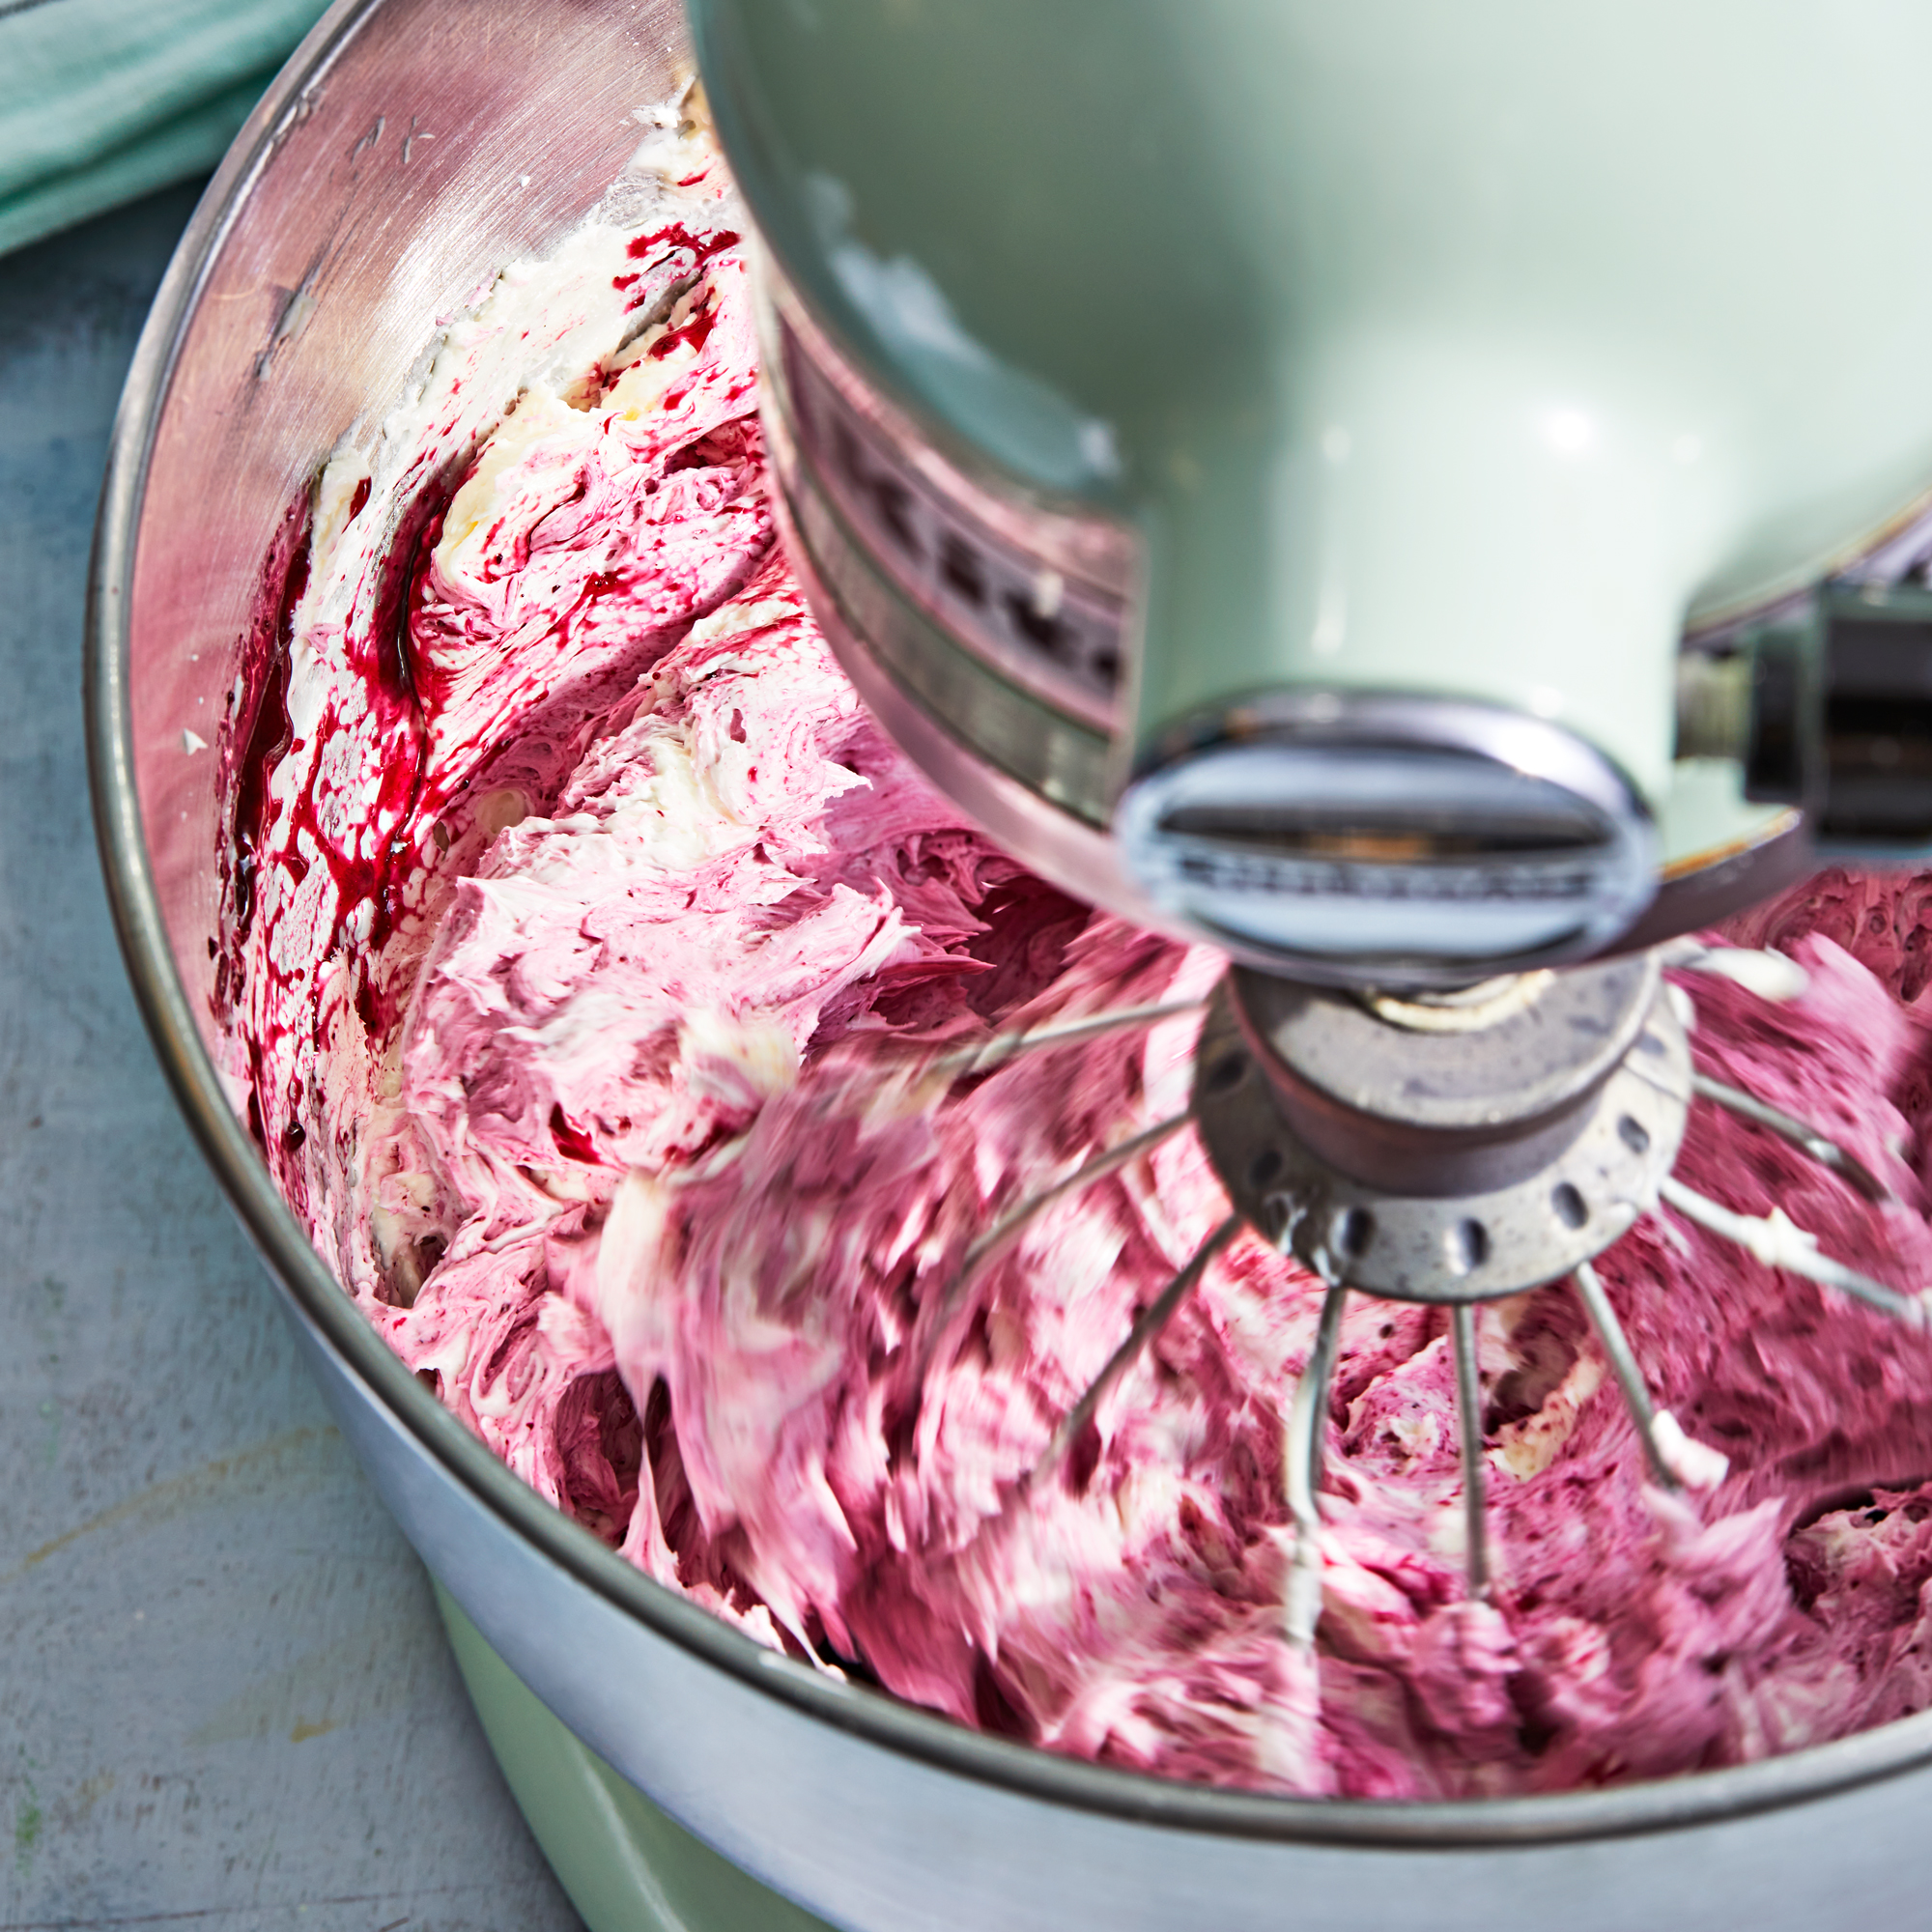 jam whipping into buttercream frosting